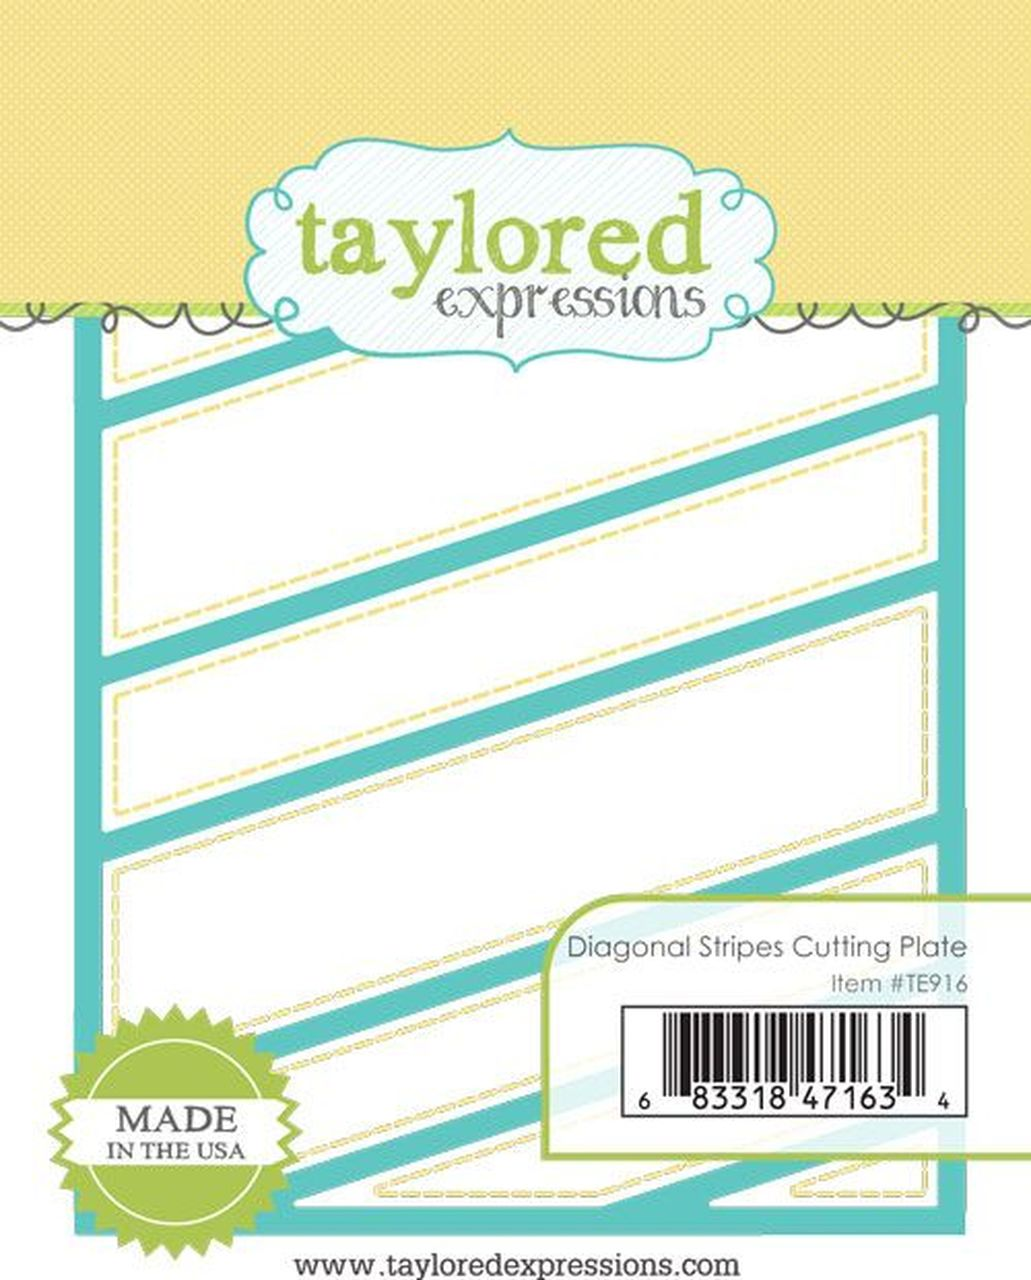 Taylored Expression - Diagonal Stripes Cutting Plate